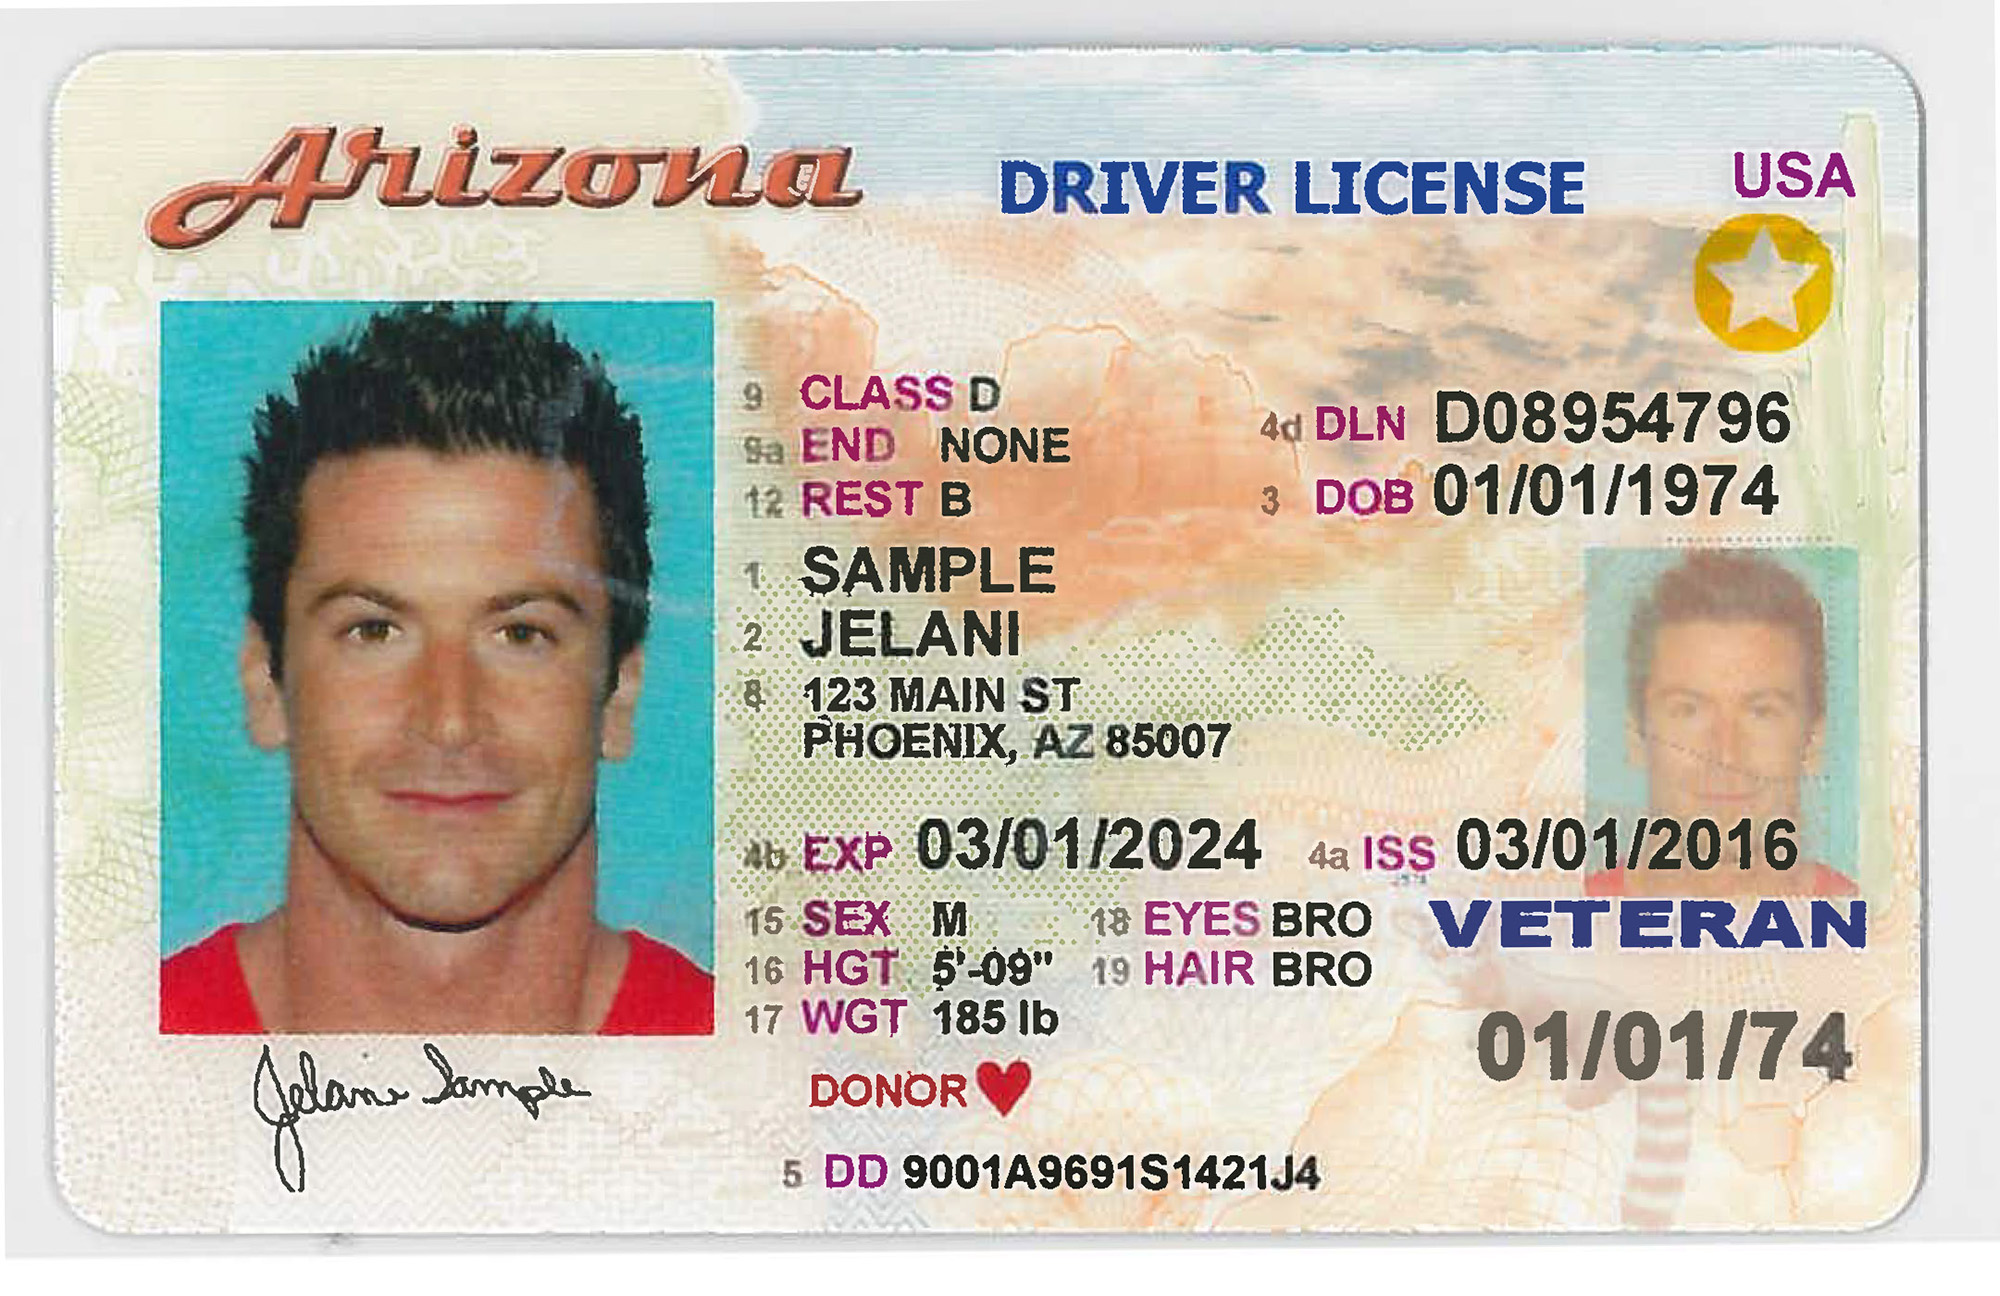 Current Tags Until Air Mvd Titles Licenses Driver Arizona For Are Ids Oc Power - More Offices Valid And Travel